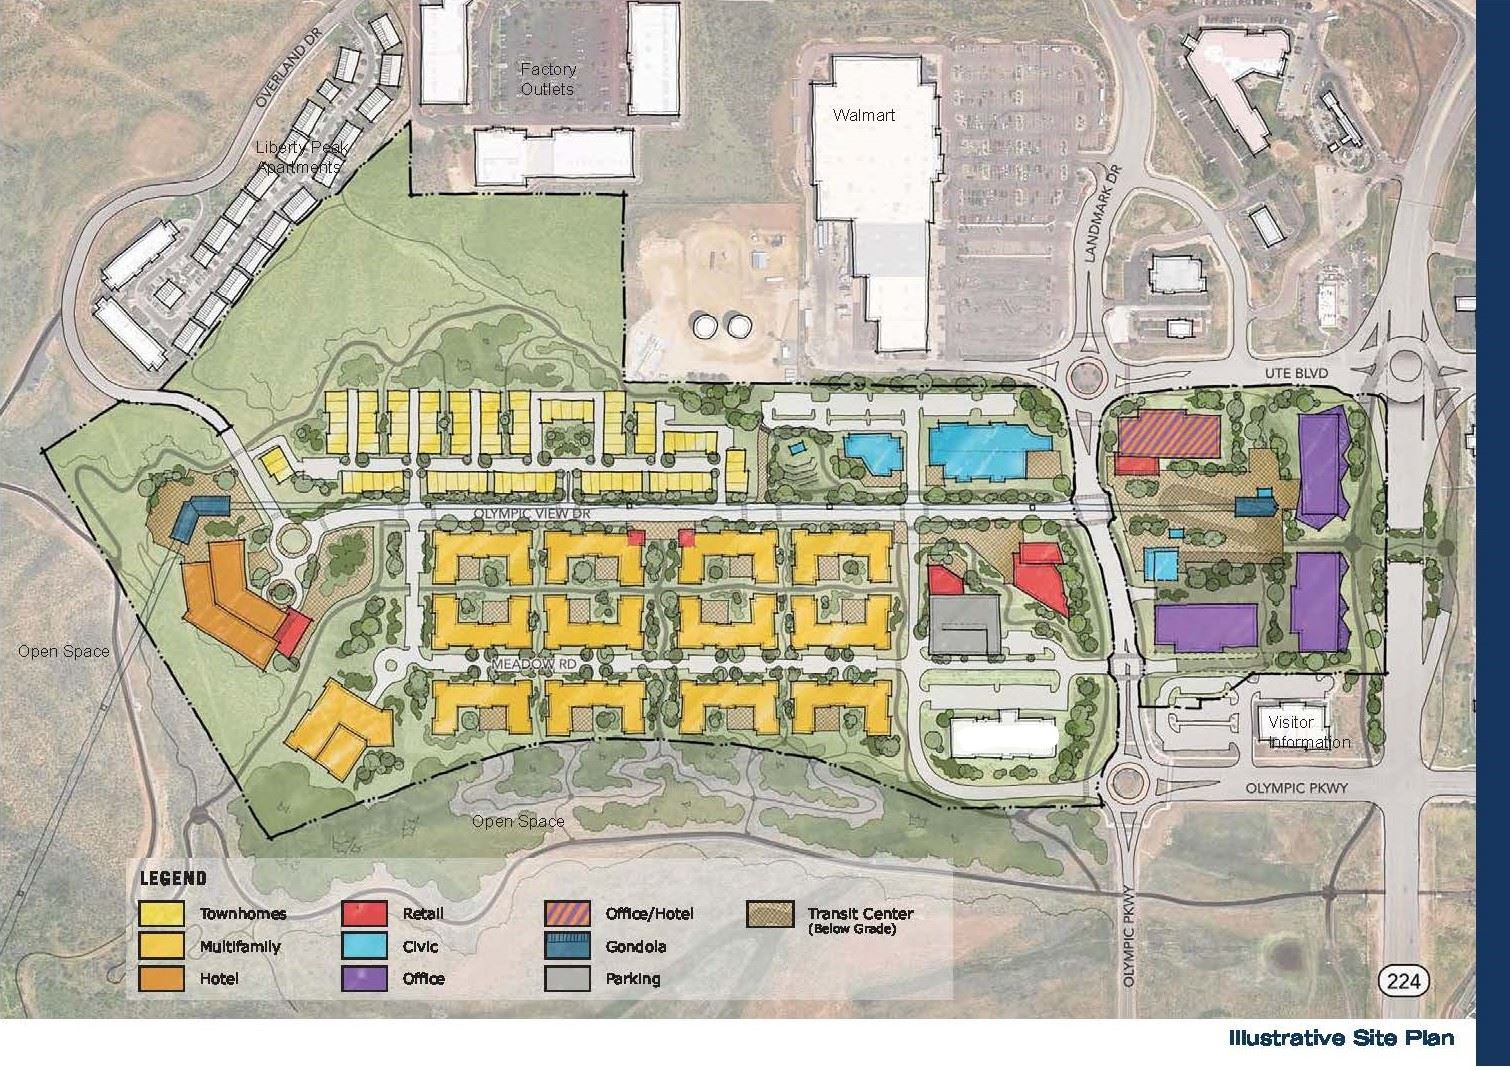 Illustrative Site Plan Olympic View Cropped